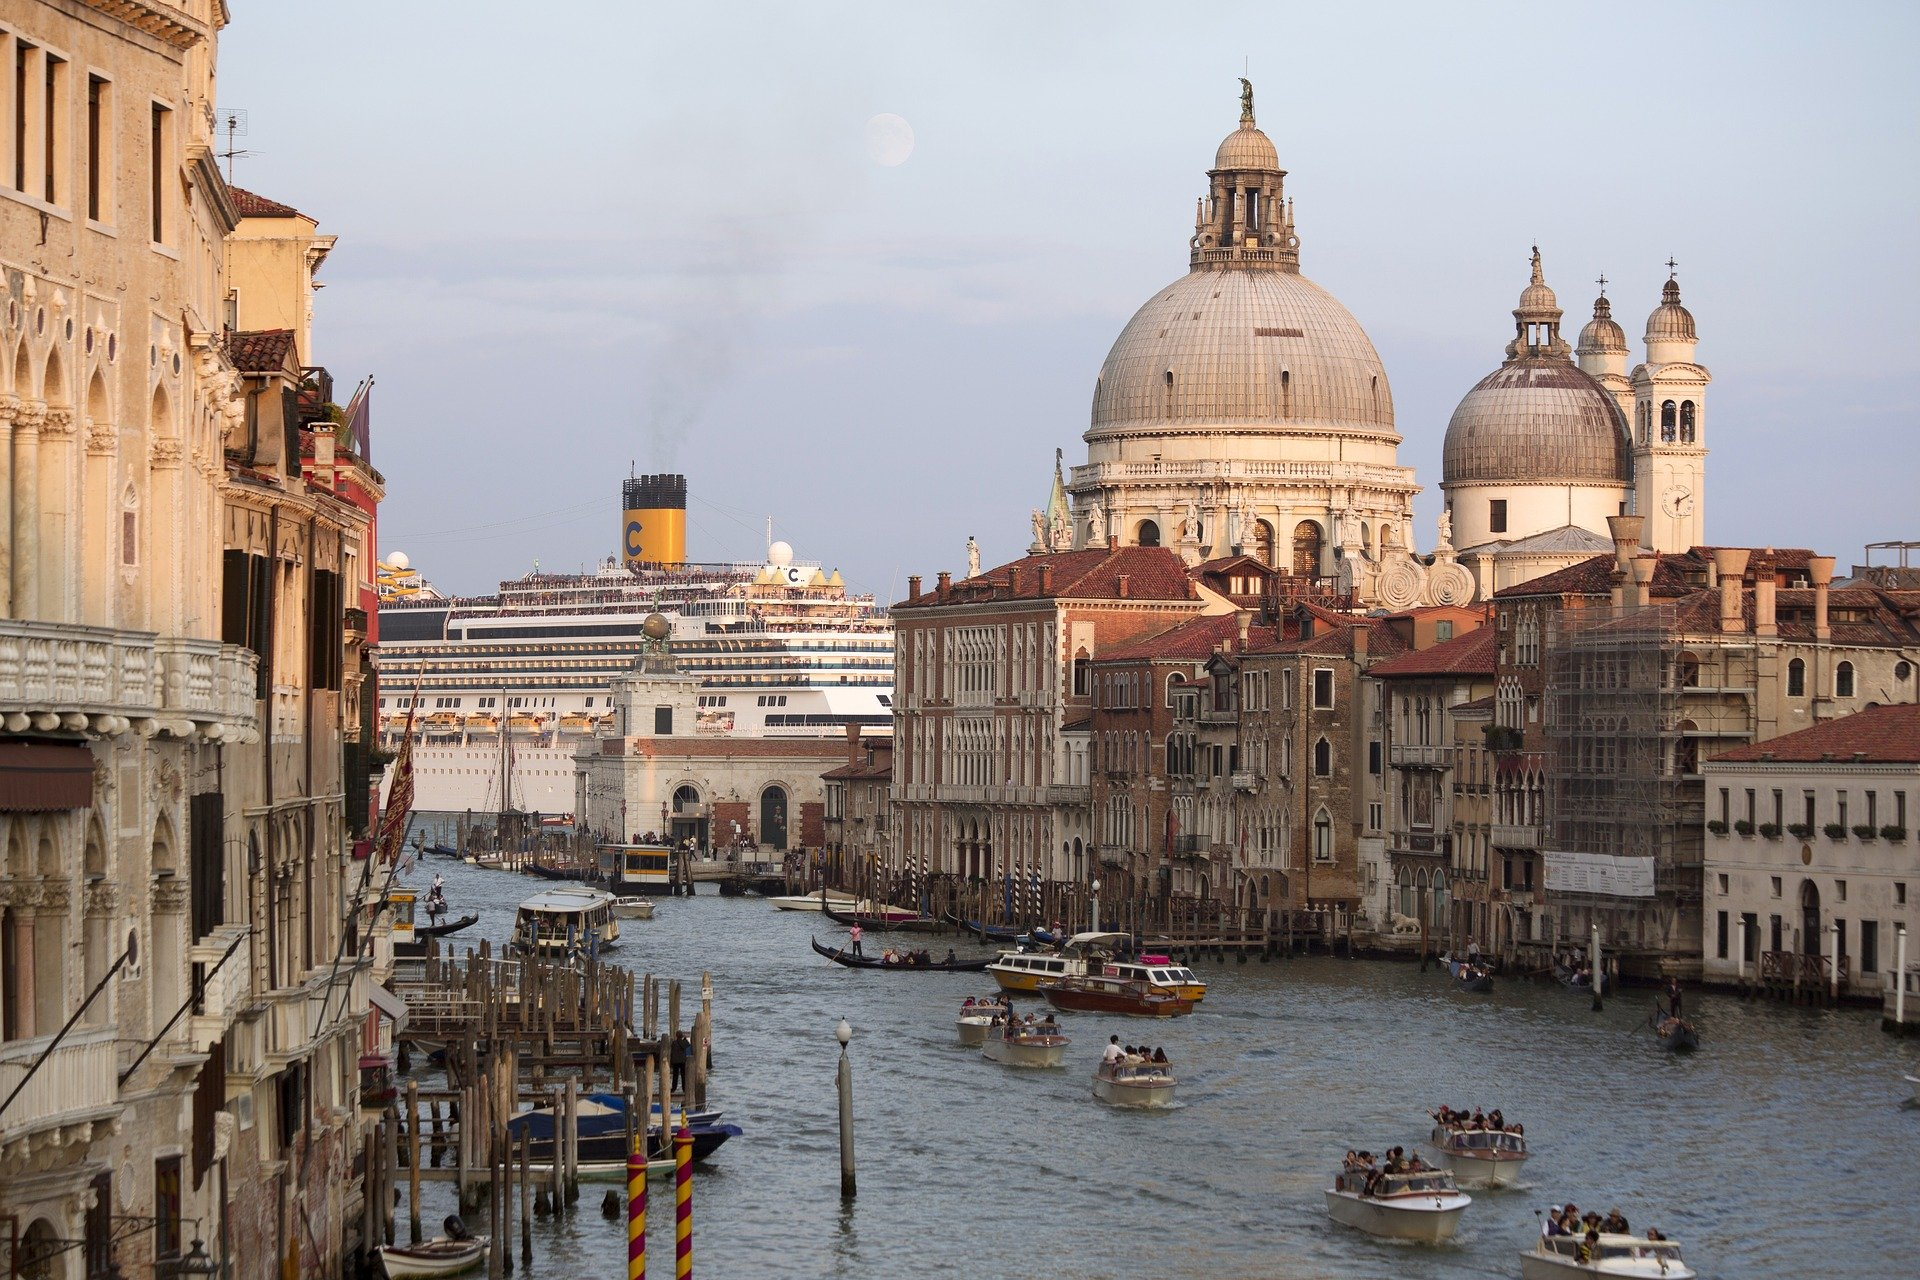 Venice Cruise Schedule May 2019 – Including passenger numbers